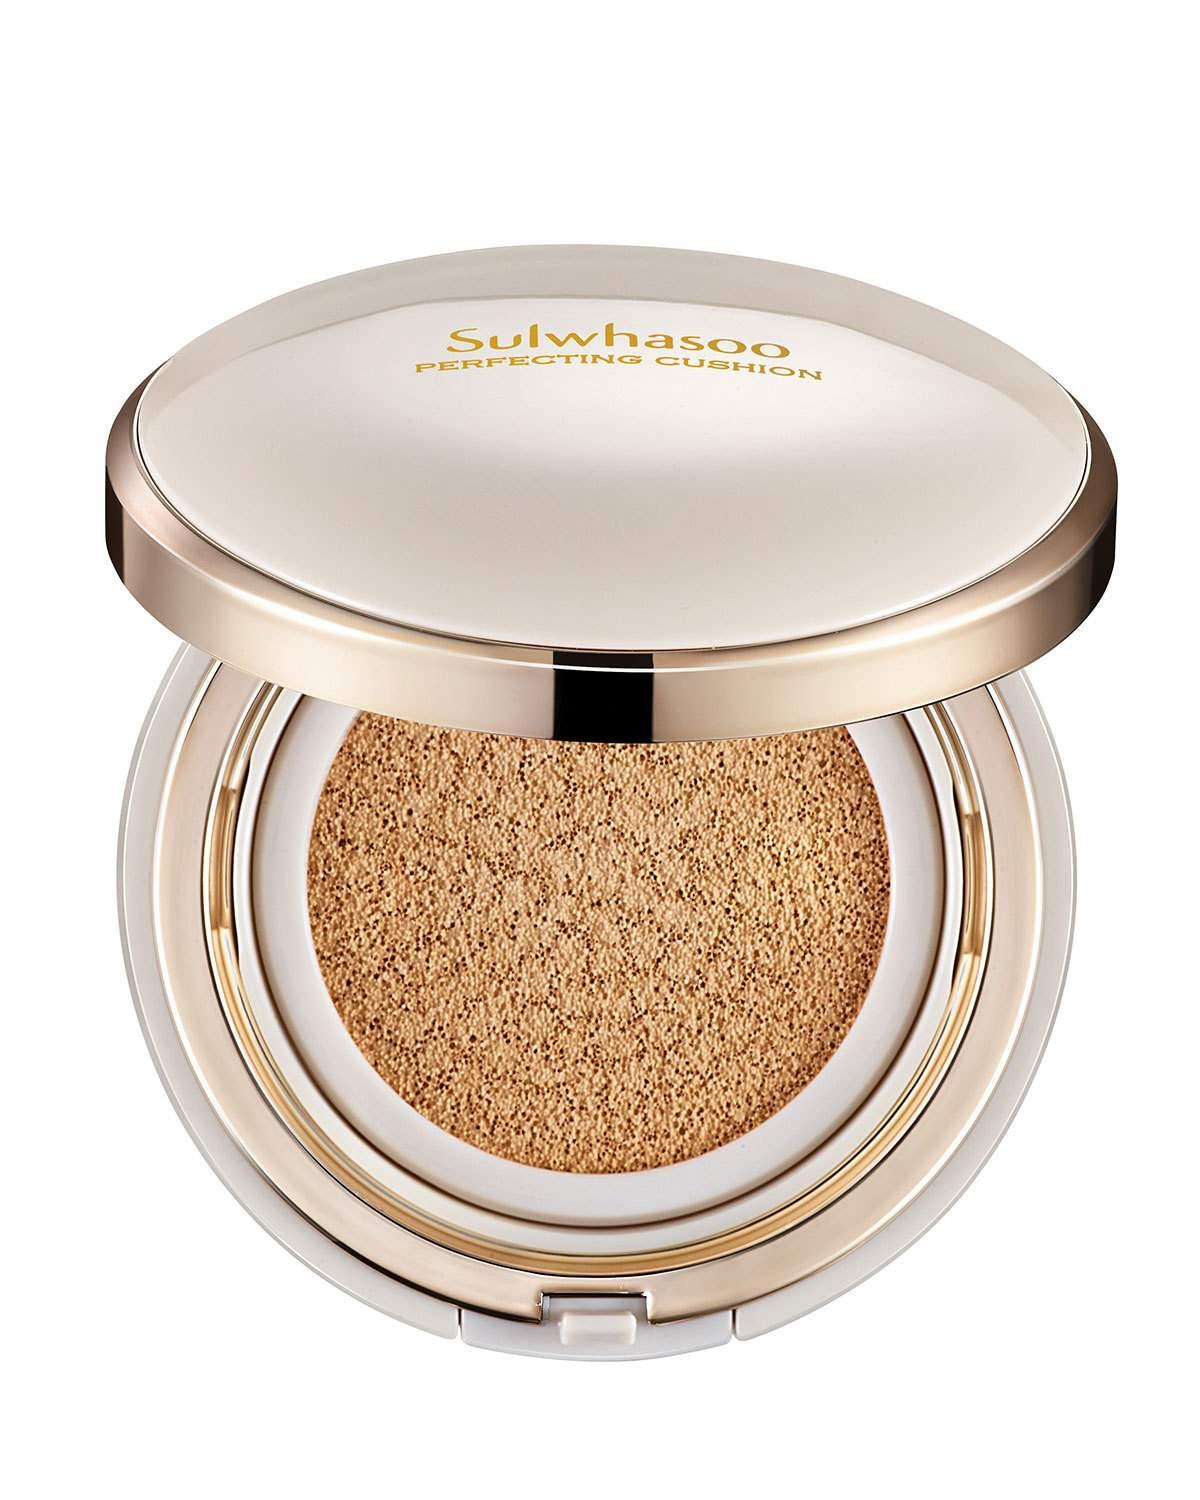 Sulwhasoo Perfecting Cushion Spf 50+ In Shade 21